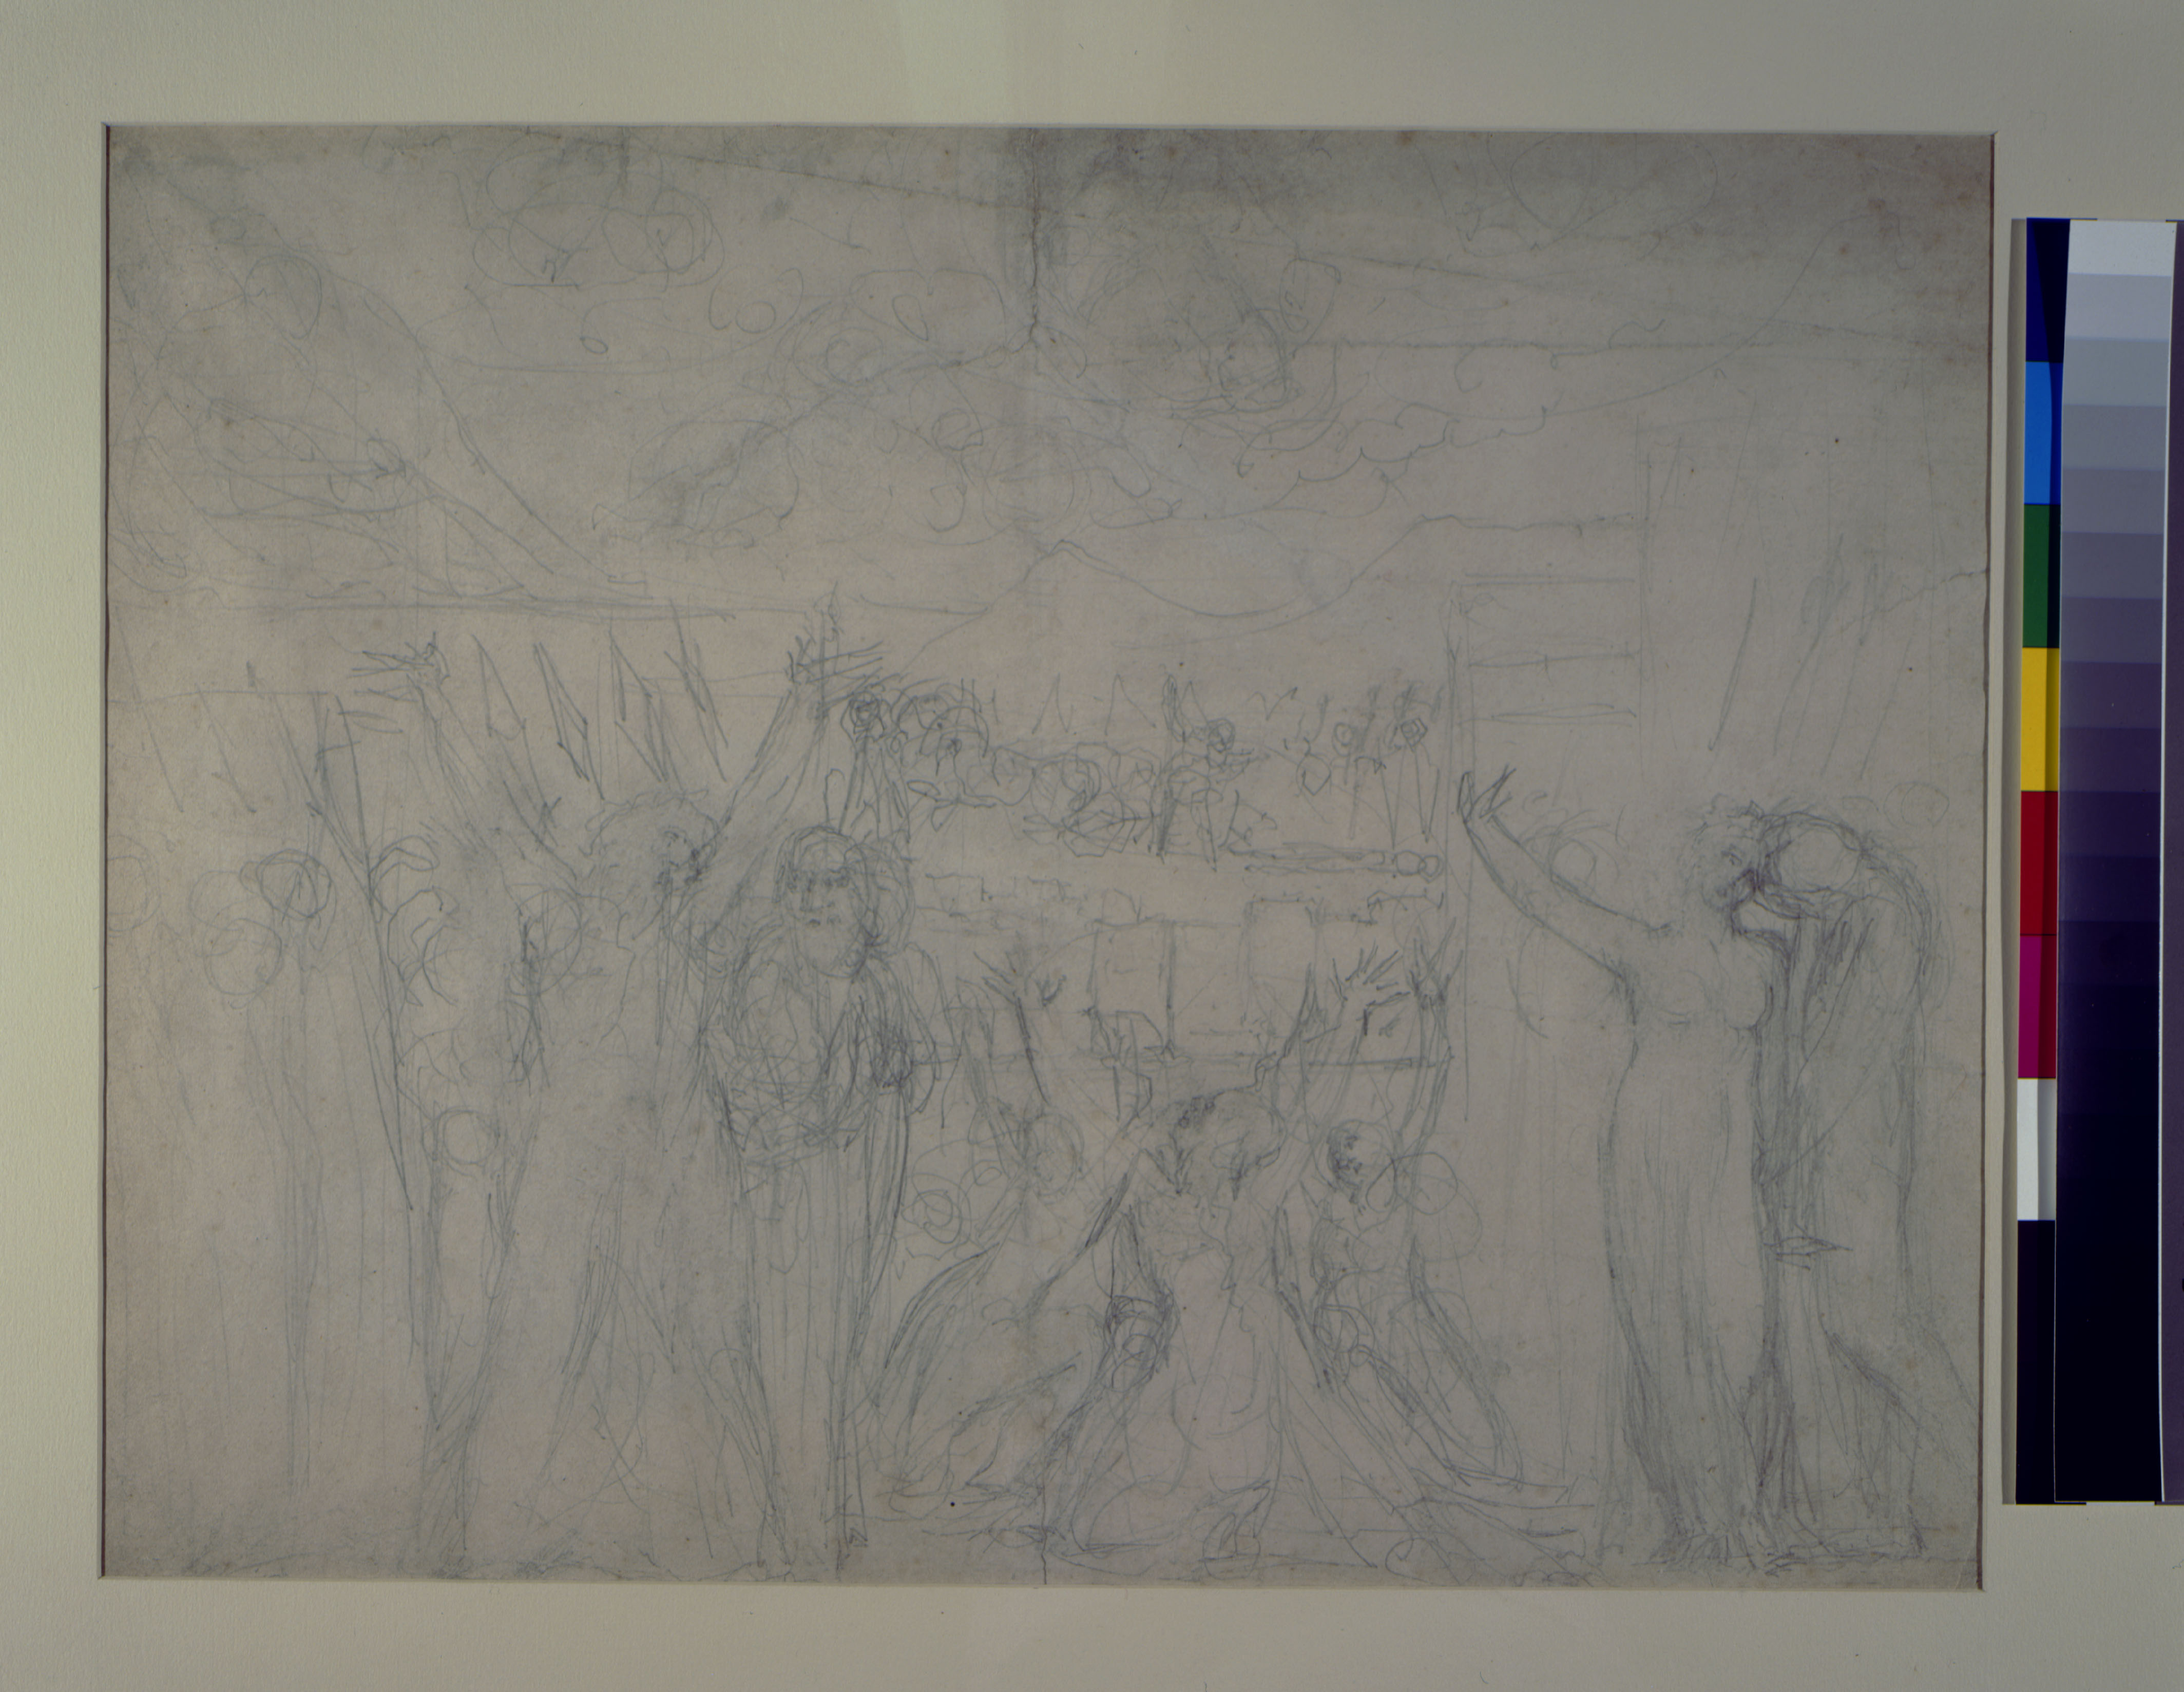 blake in the marketplace 1985 robert n essick blake an 1 blake the death of hector pencil drawing on sheet 42 5 54 3 cm c 1821 27 essick collection untraced between its mis description as jephthah met